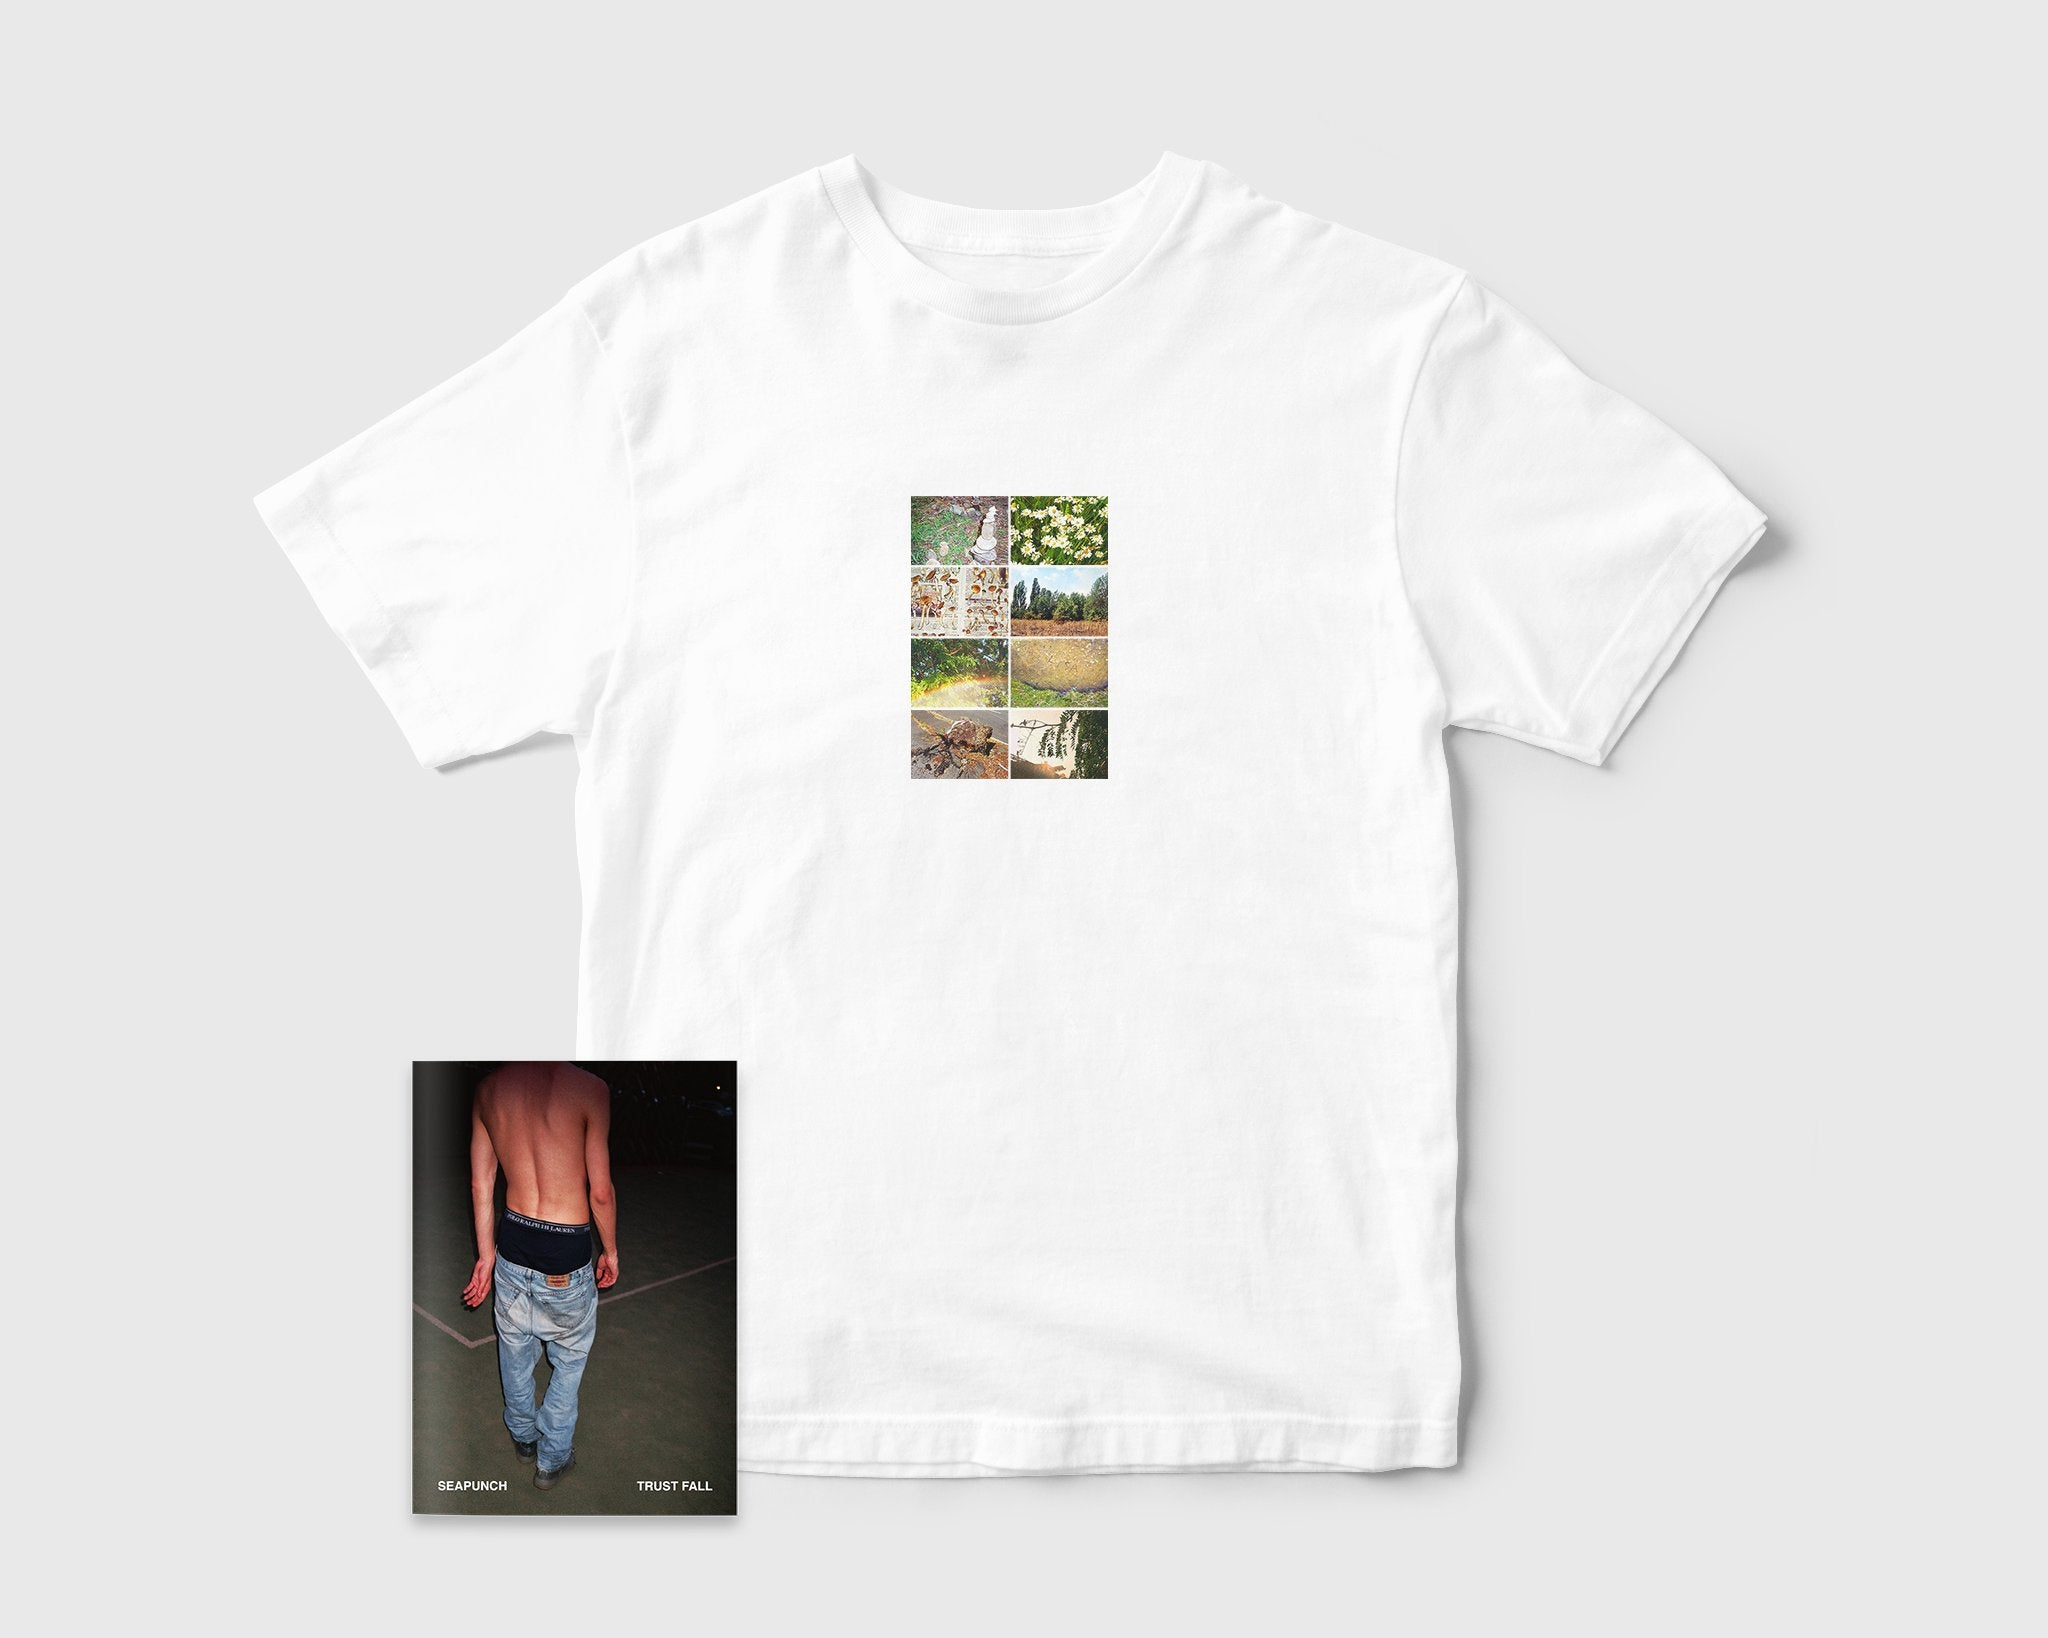 Tomorrow - Tomorrow x Village x Seapunch 'Trust Fall' Zine/T-Shirt Pack